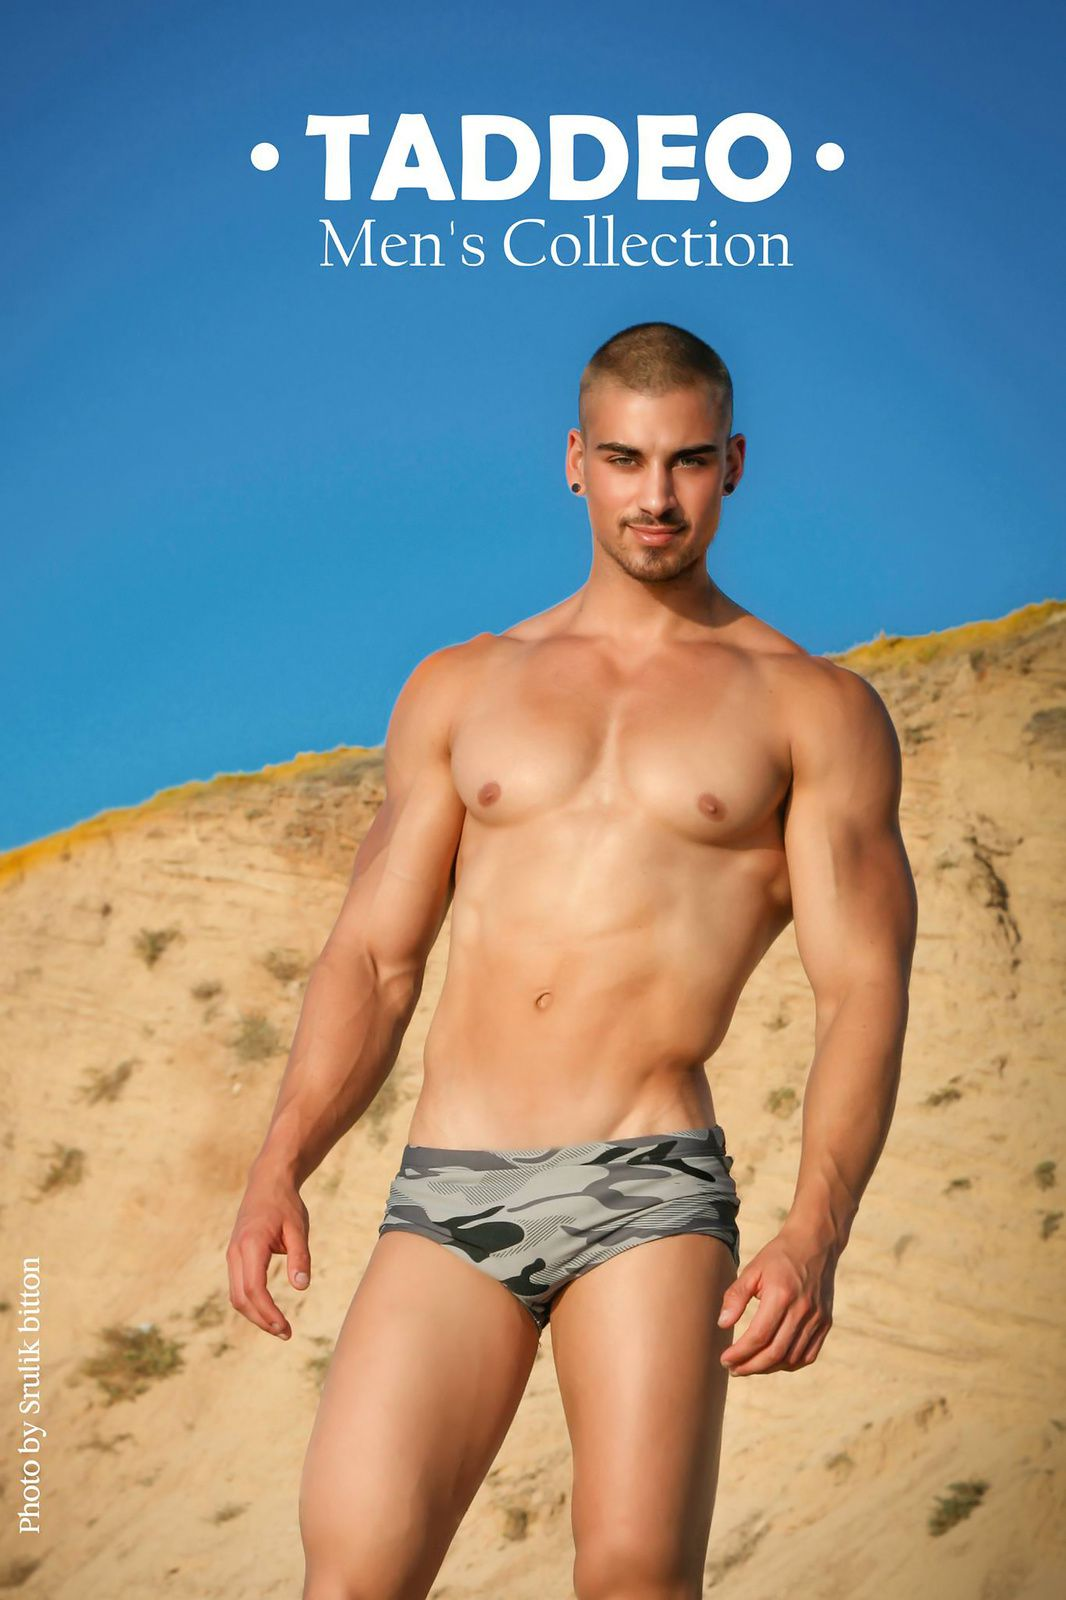 Introducing Taddeo : Men Underwear &amp&#x3B; Swimwear